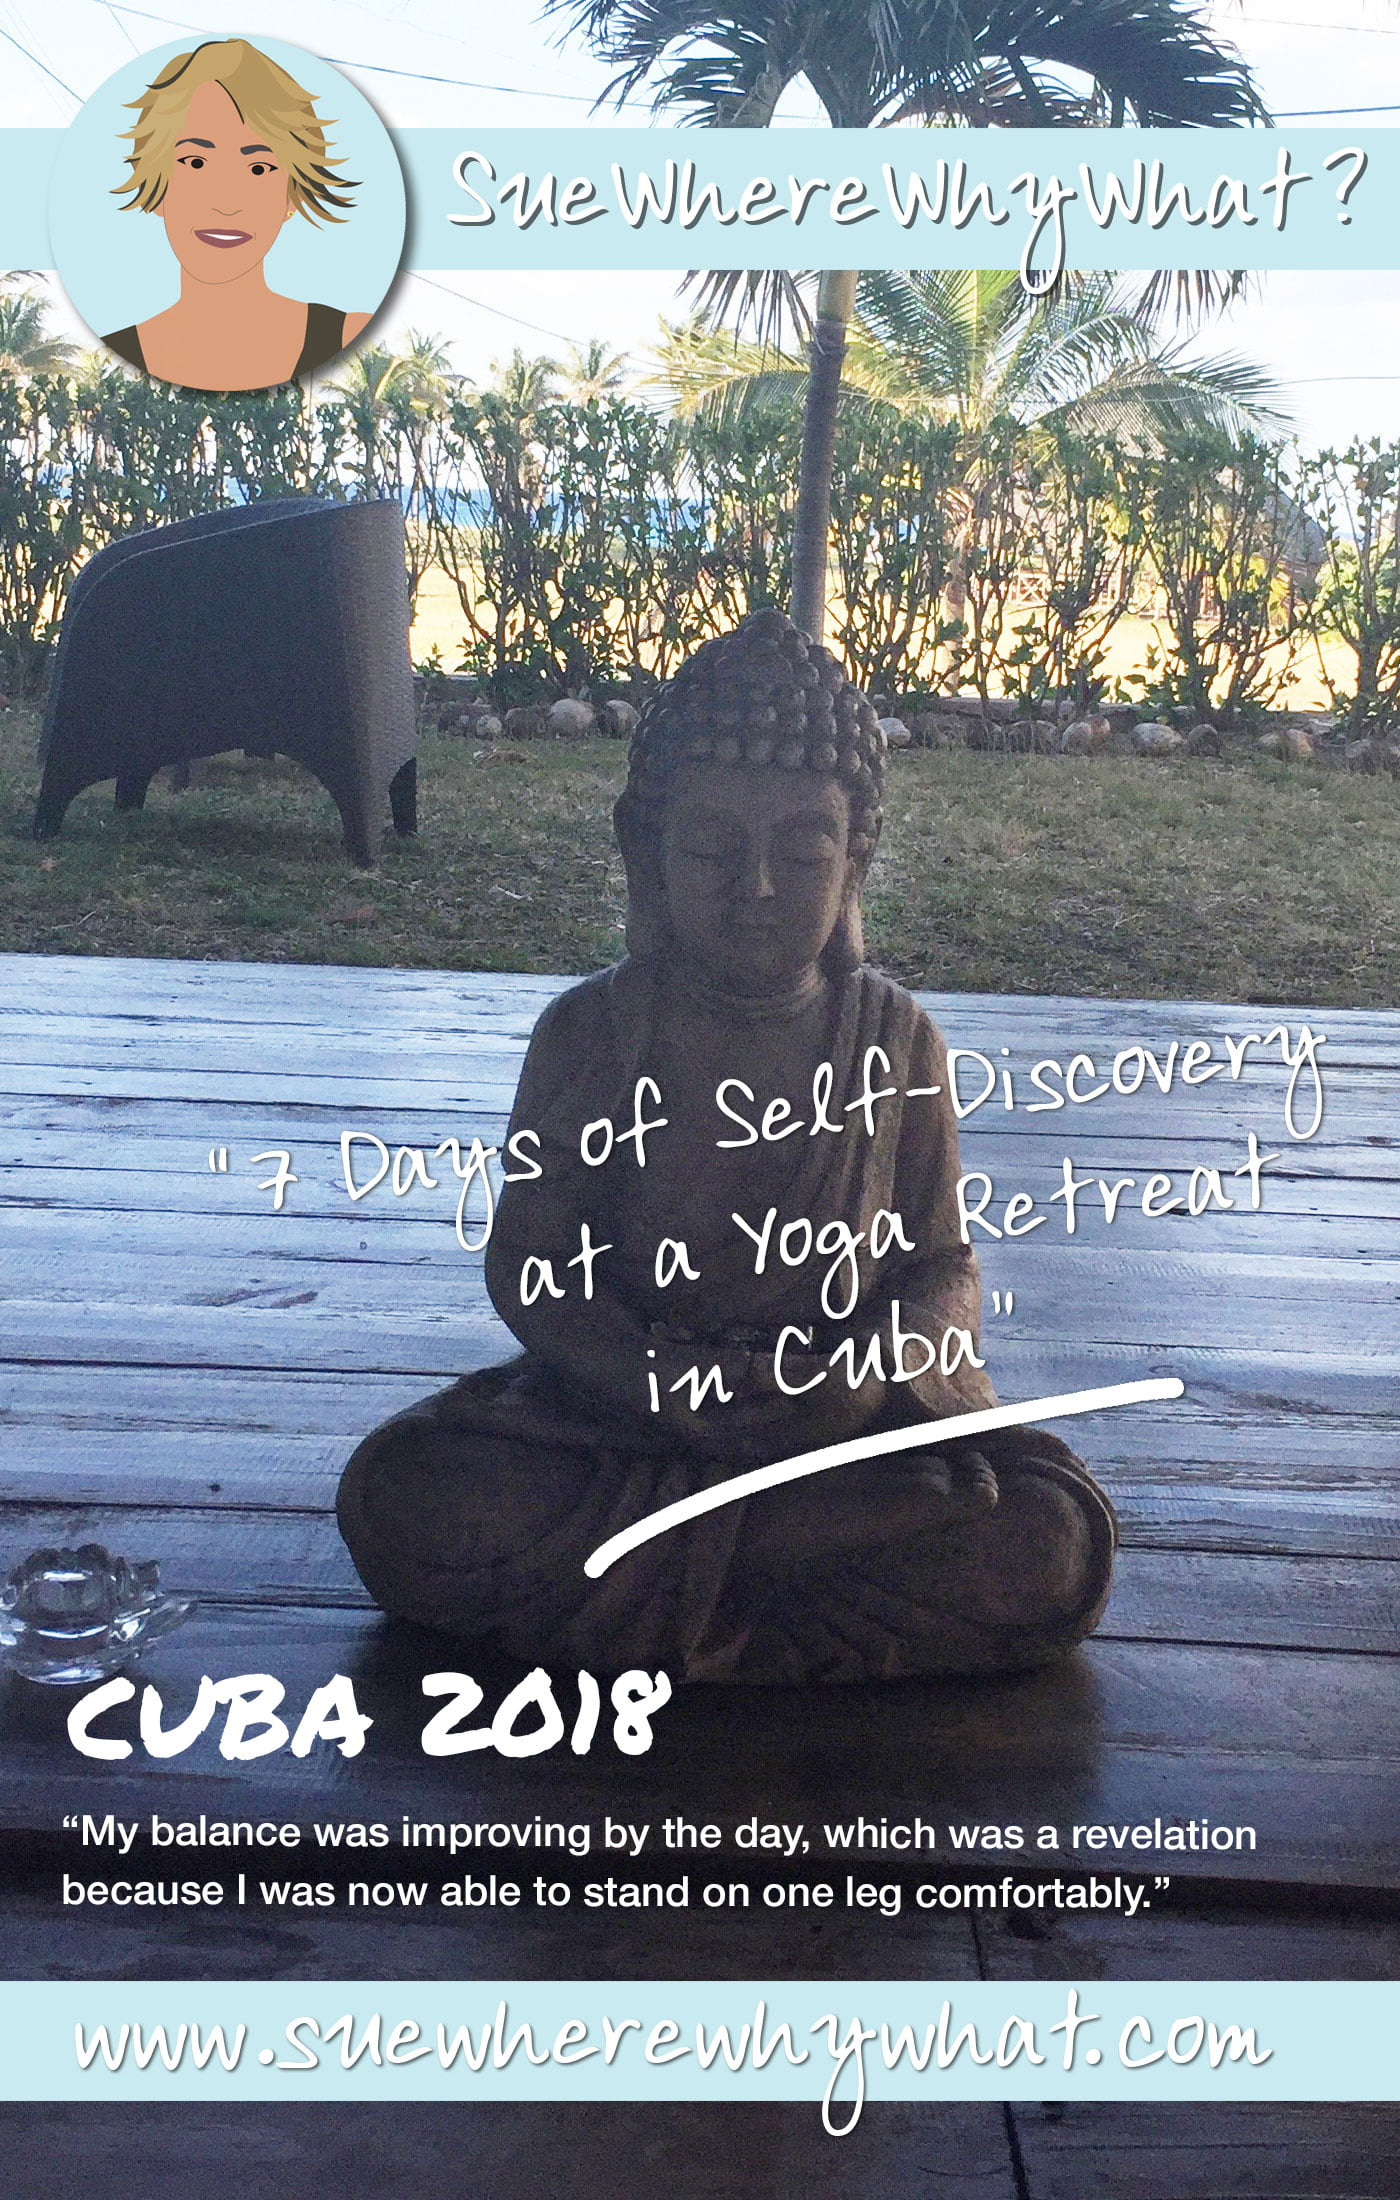 7 Days of Self-Discovery at a Yoga Retreat in Cuba